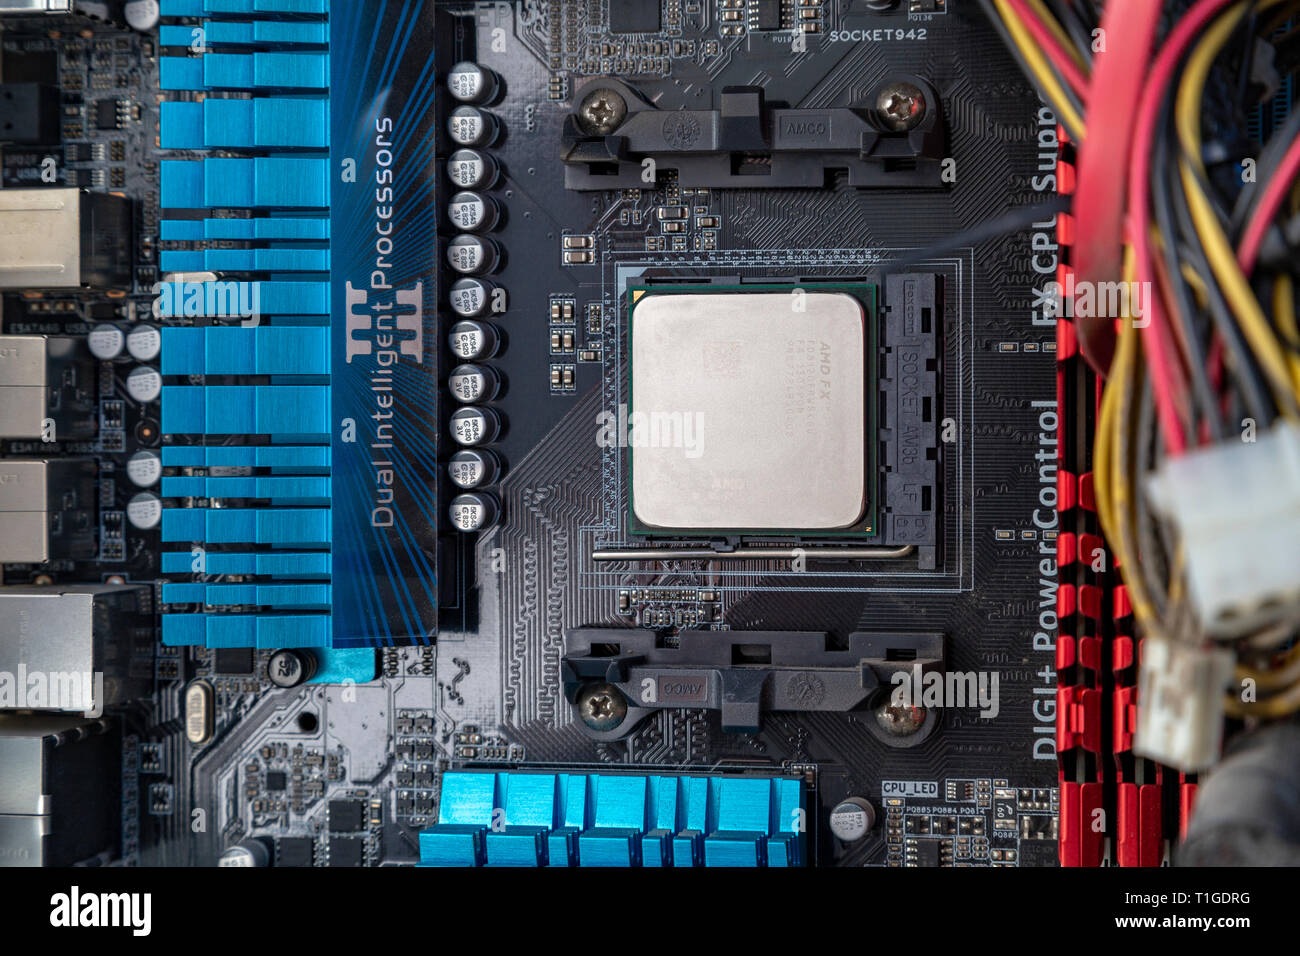 Amd processor and Asus Motherboard Stock Photo: 241921892